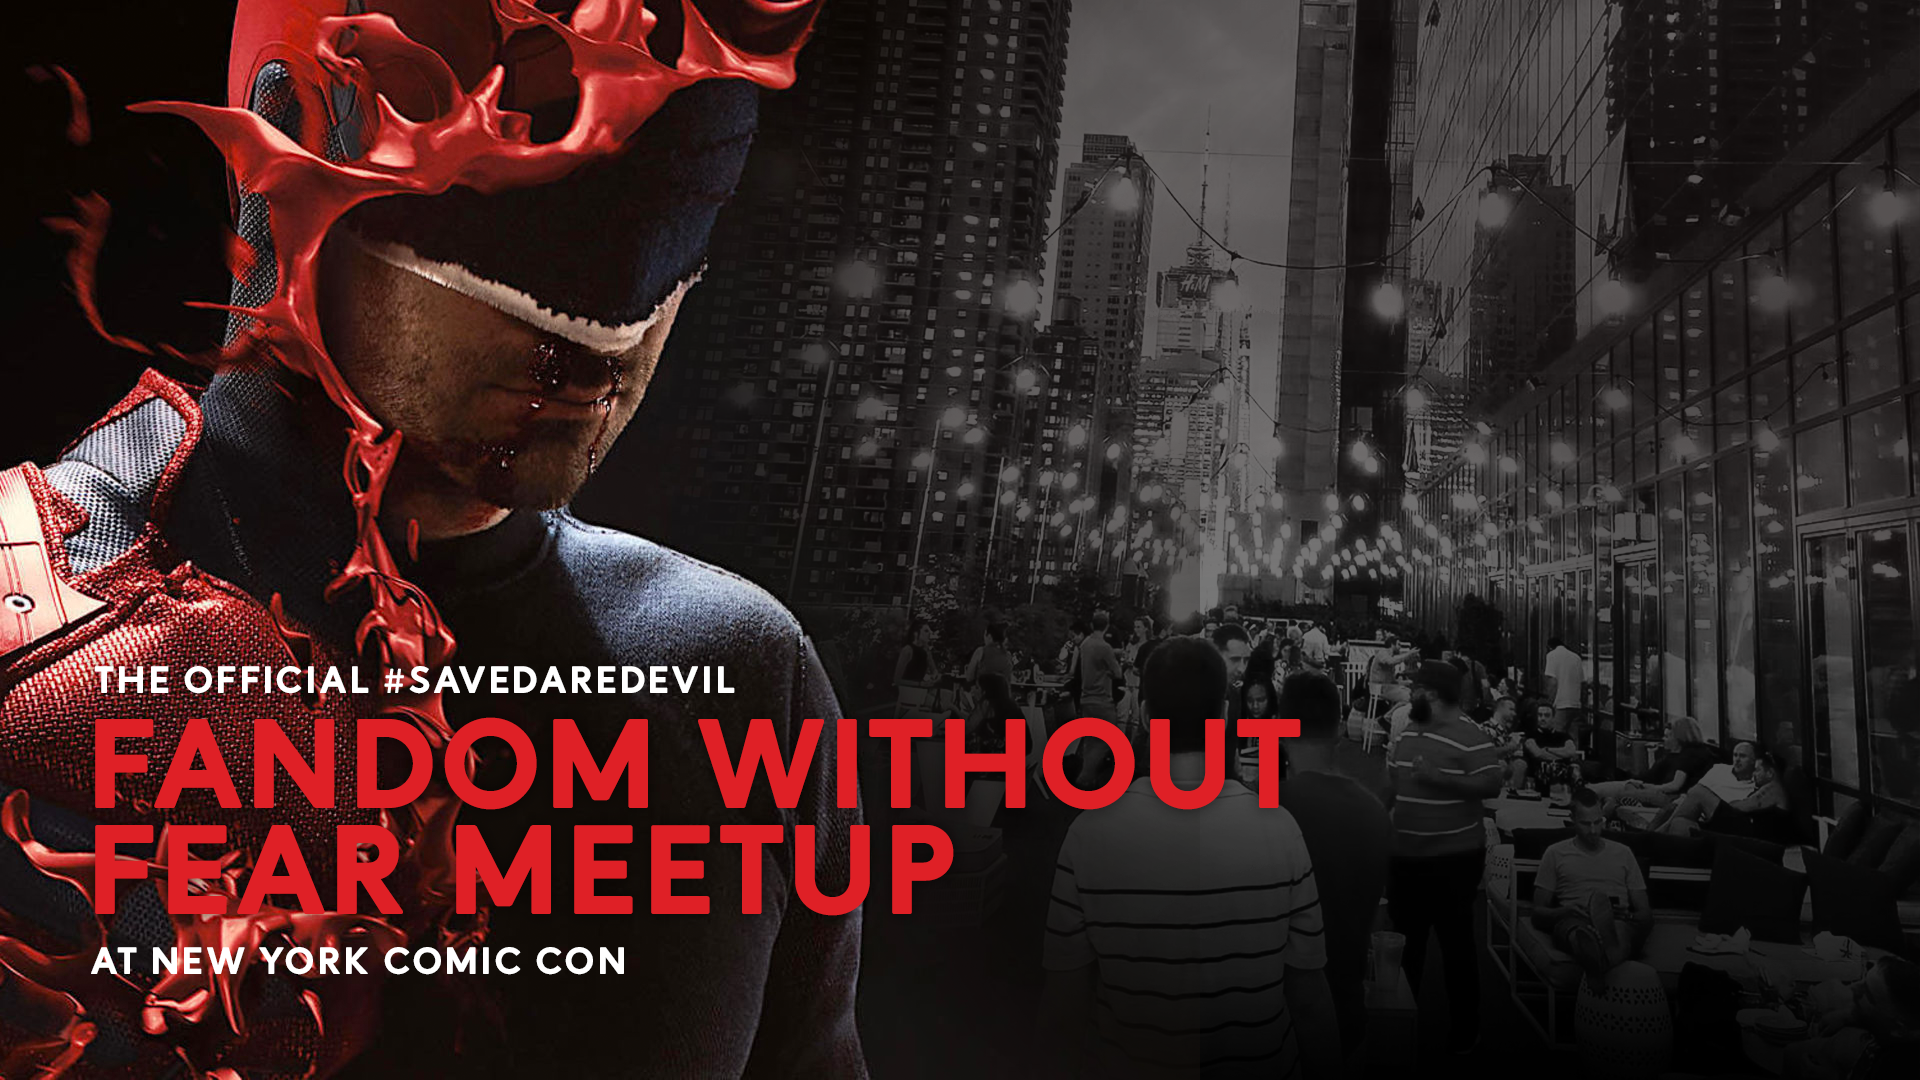 Come to our official #SaveDaredevil meetup at NYCC 2019!